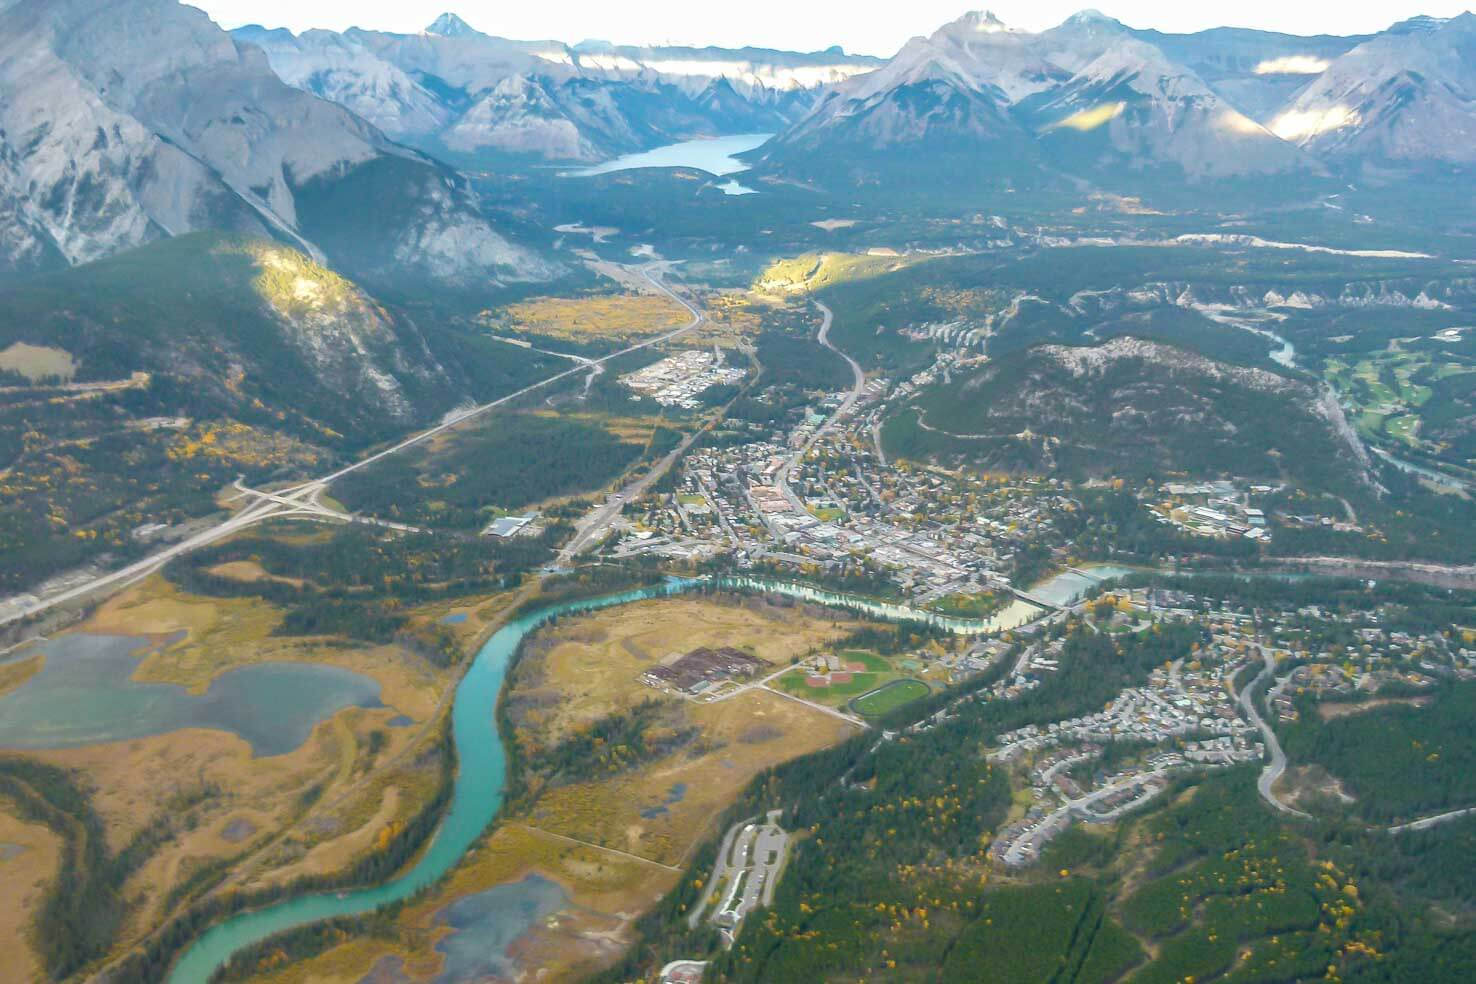 Canadian Rockies from above